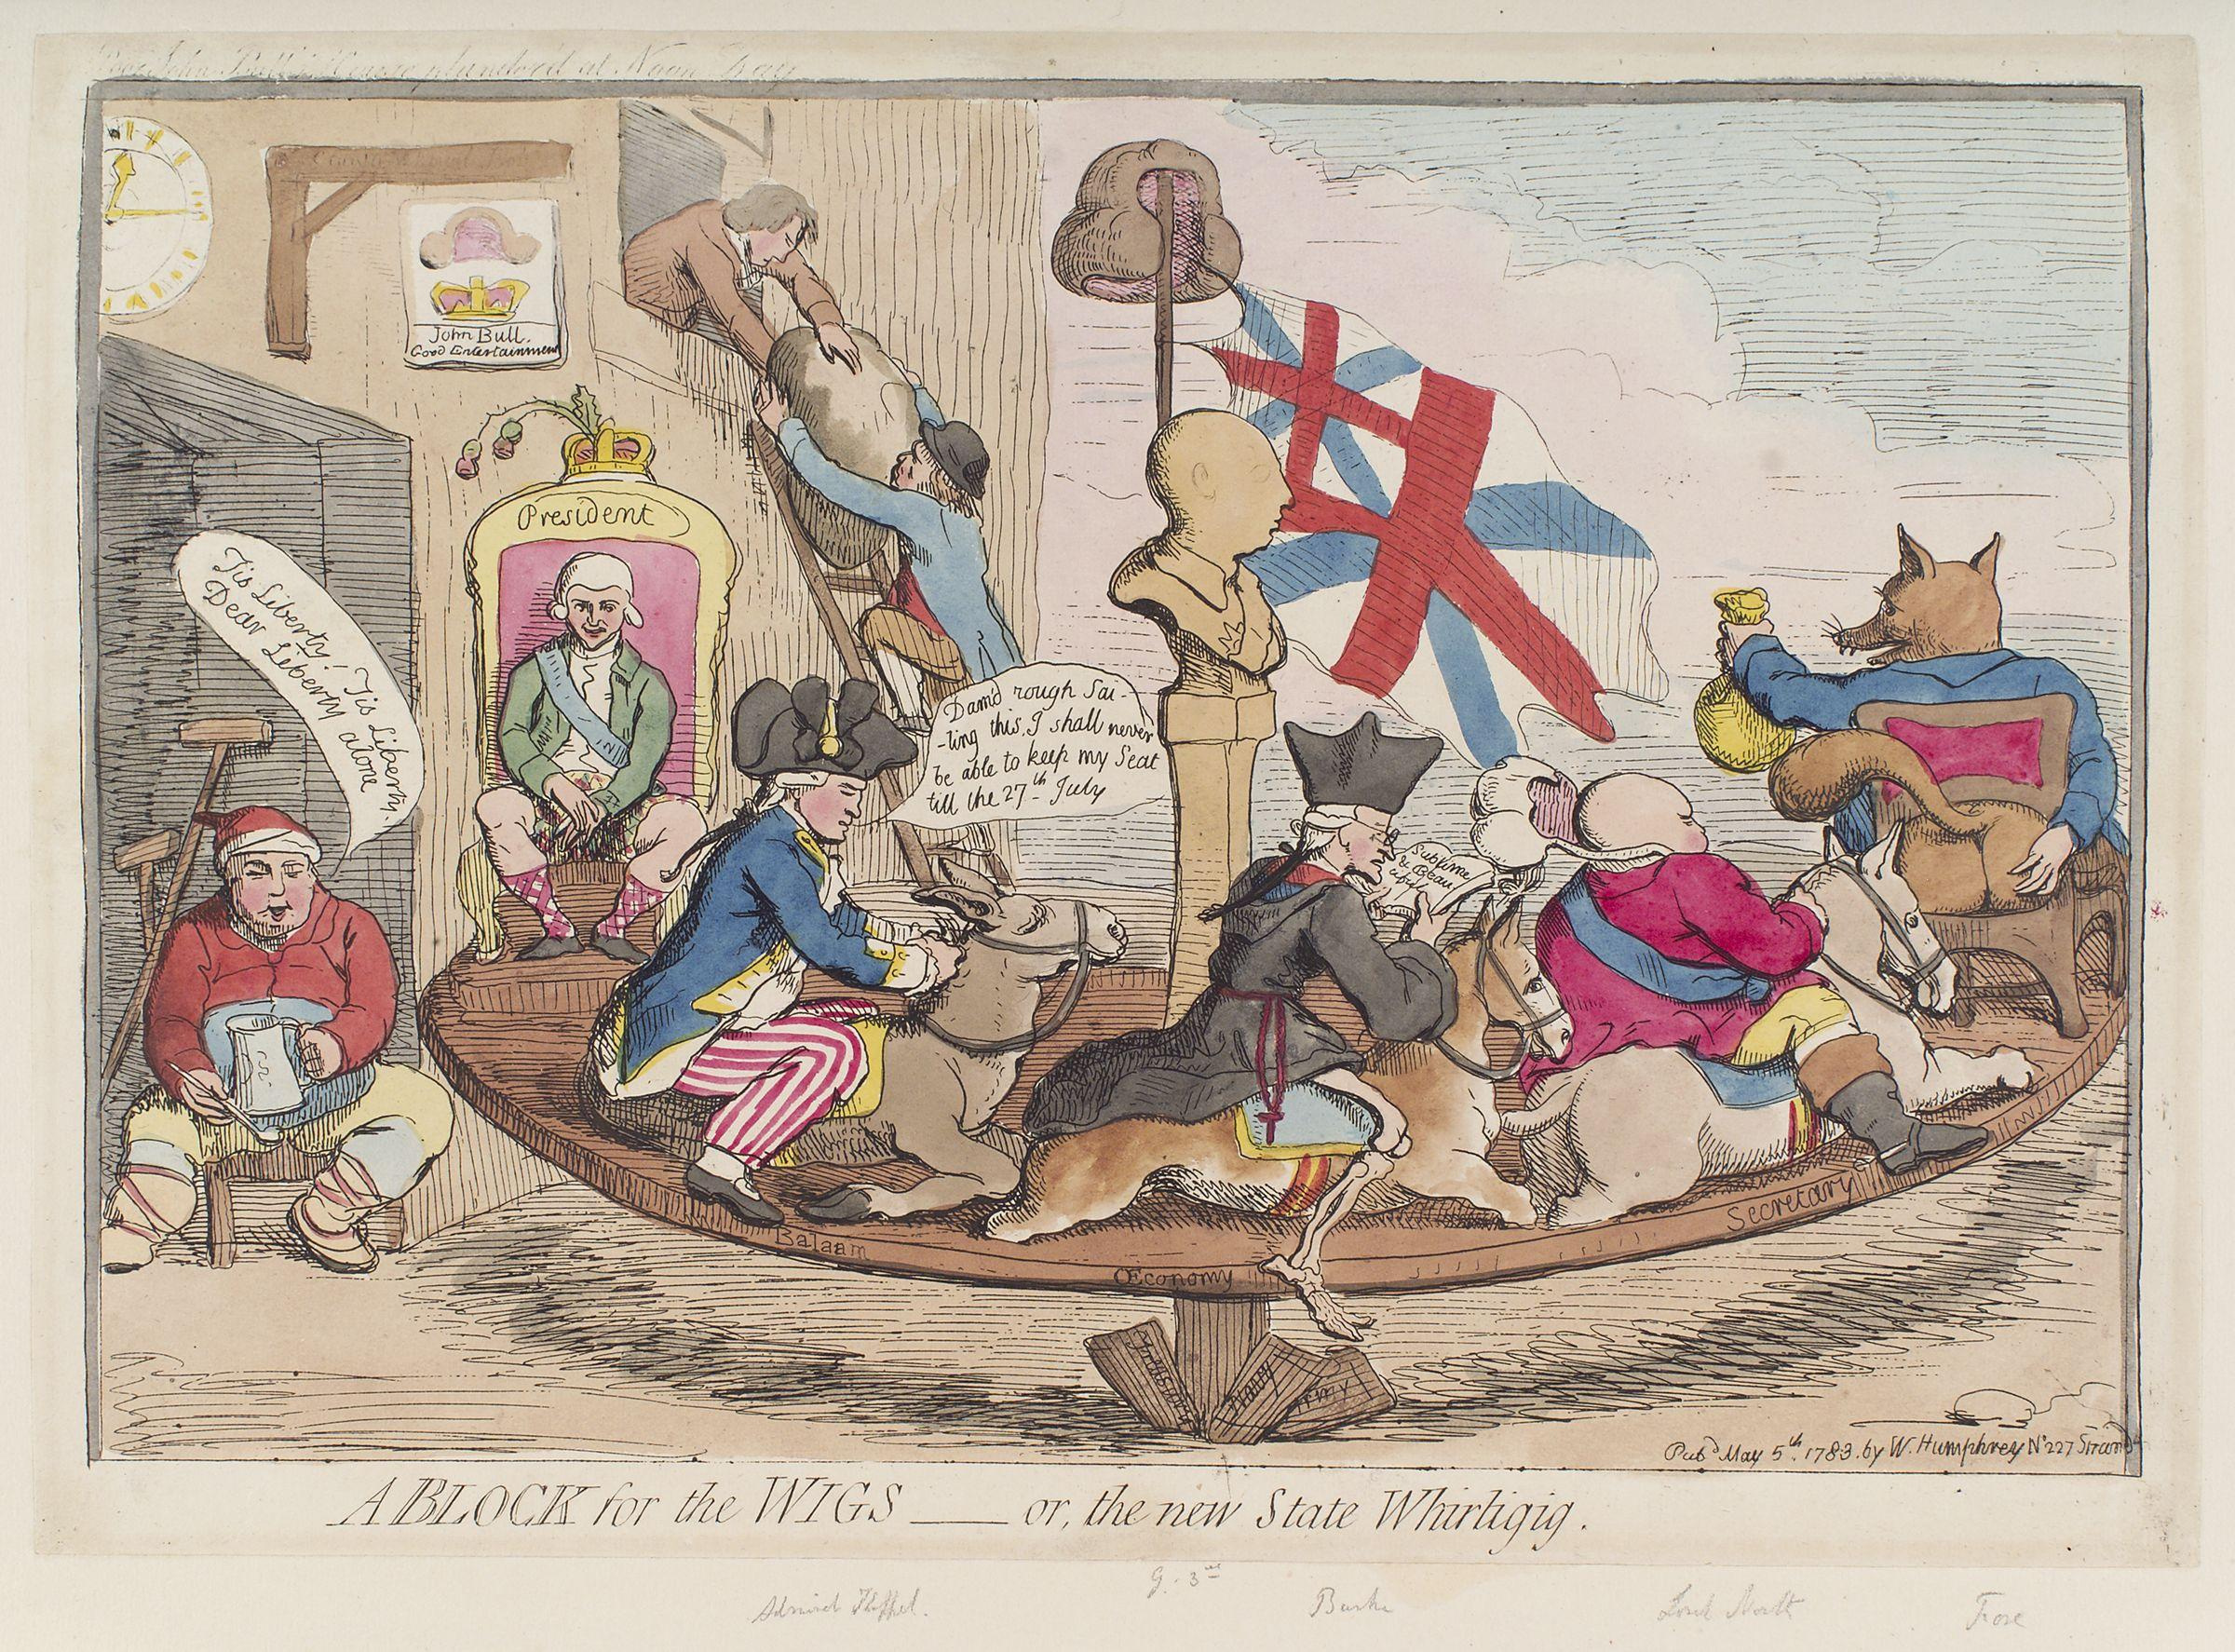 hogarth and james gillray a comparison James gillray (1756-1815), was a british caricaturist and printmaker famous for his etched political and social satires, mainly published.